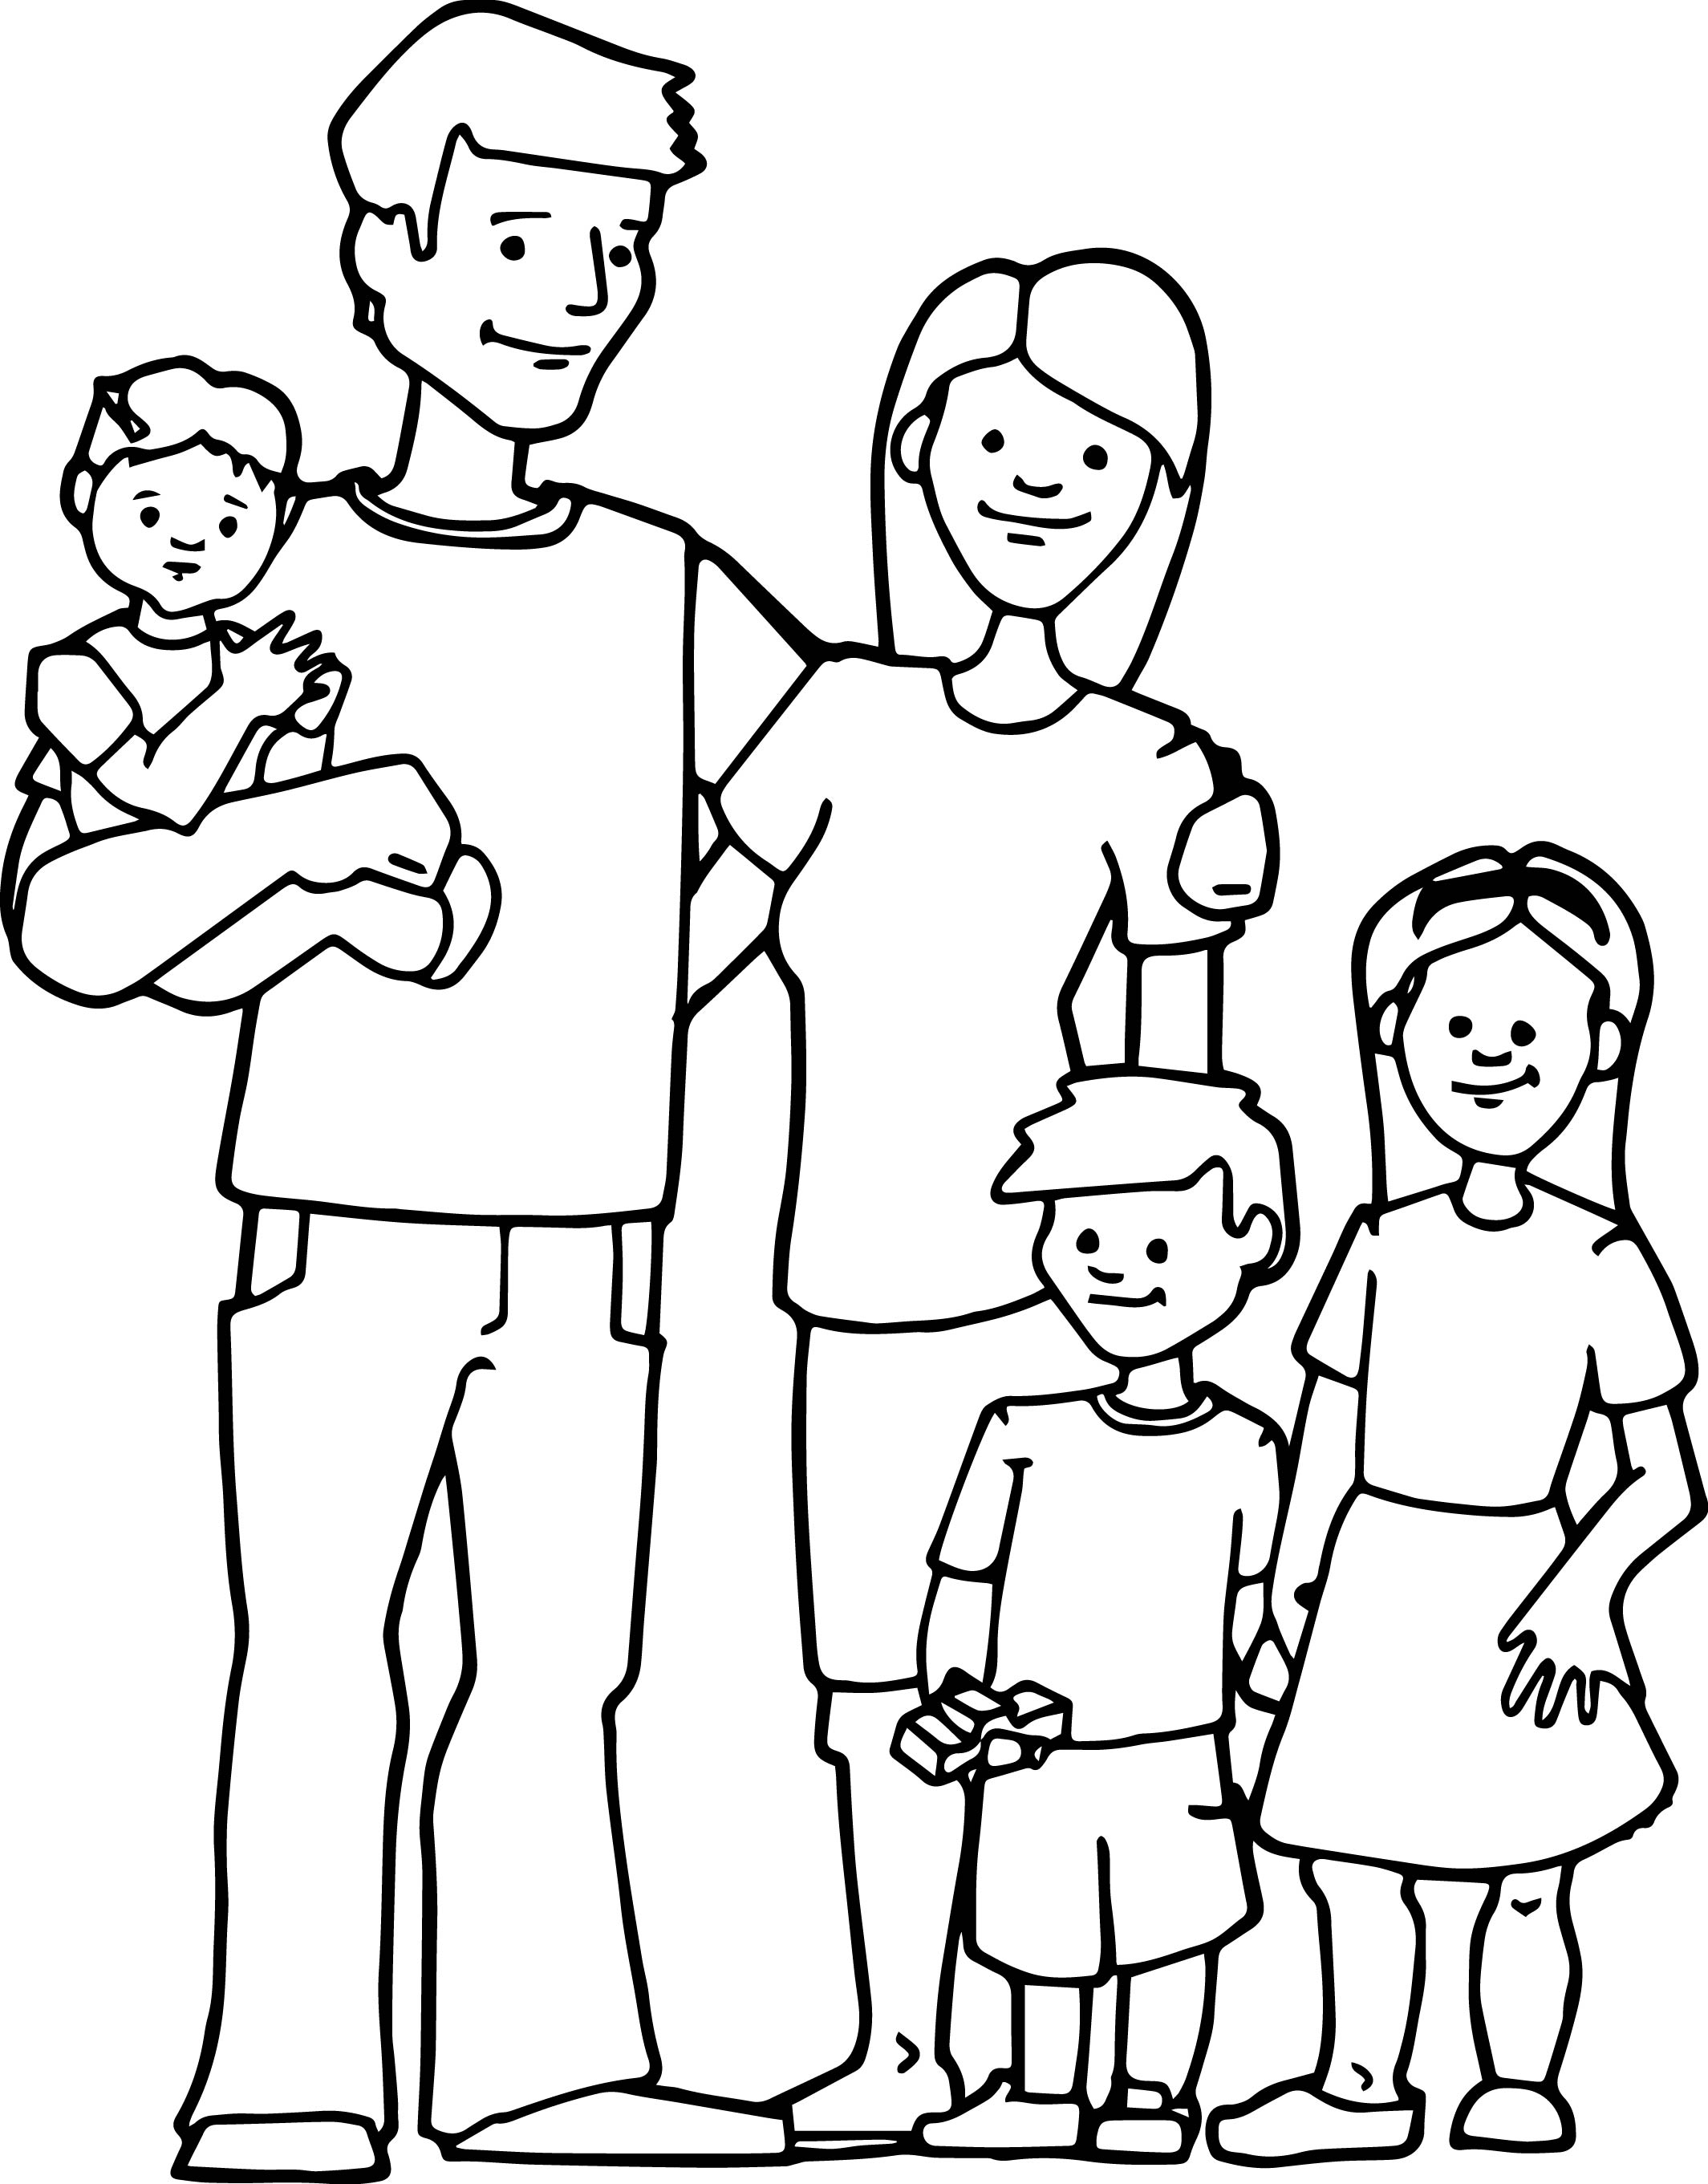 Make Your Own Coloring Pages From Photos - Family Kids Coloring Page